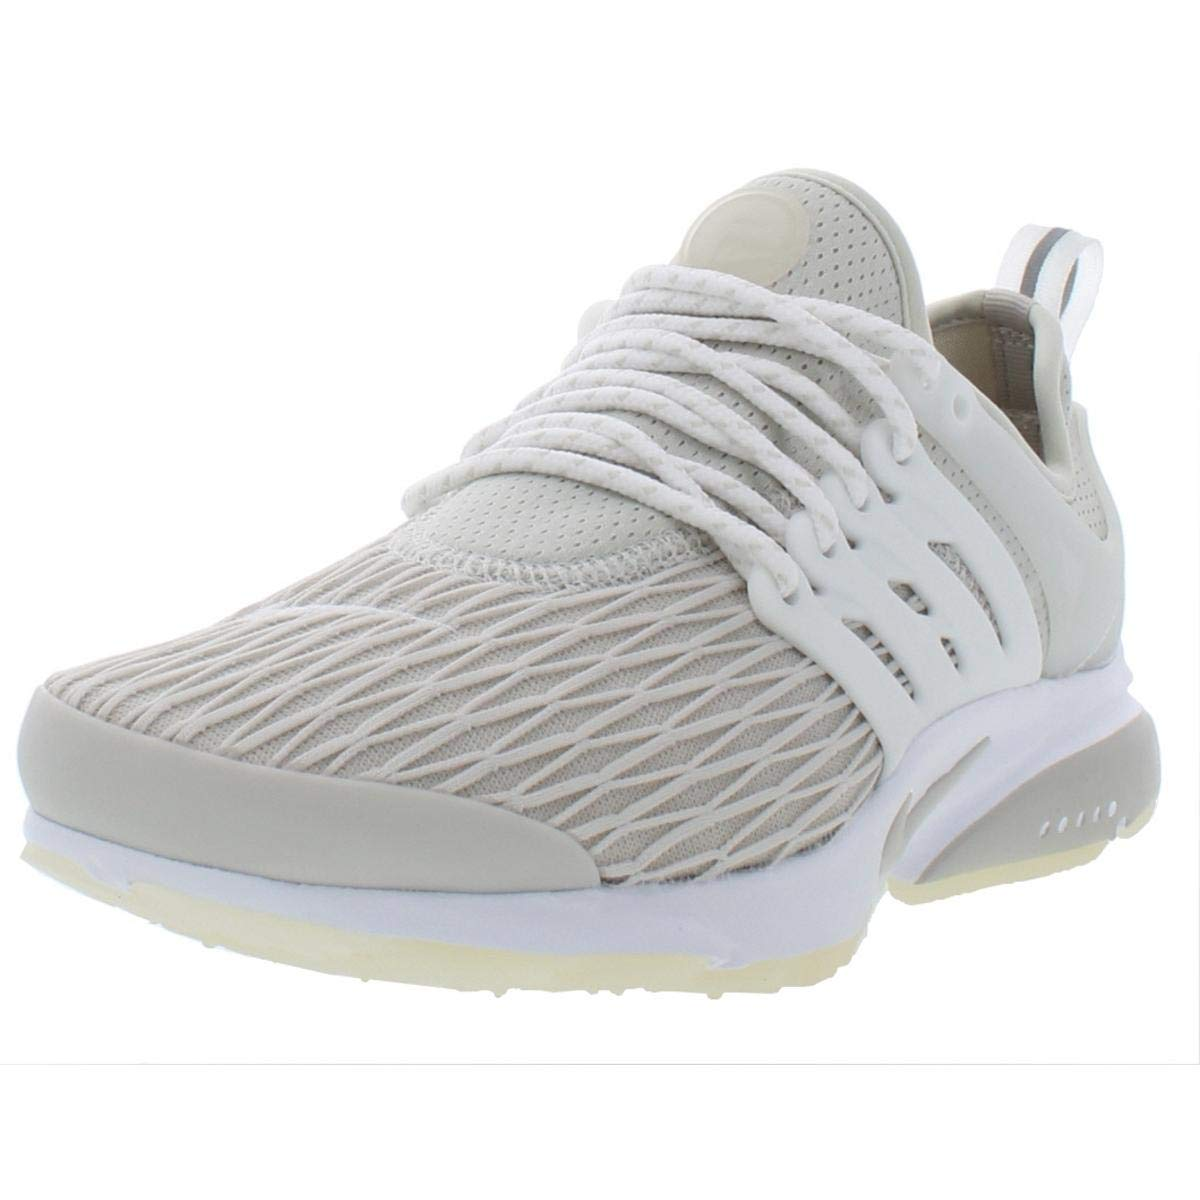 check out a6520 ca2cc Amazon.com   Nike Womens Air Presto PRM Workout Running Shoes   Fashion  Sneakers